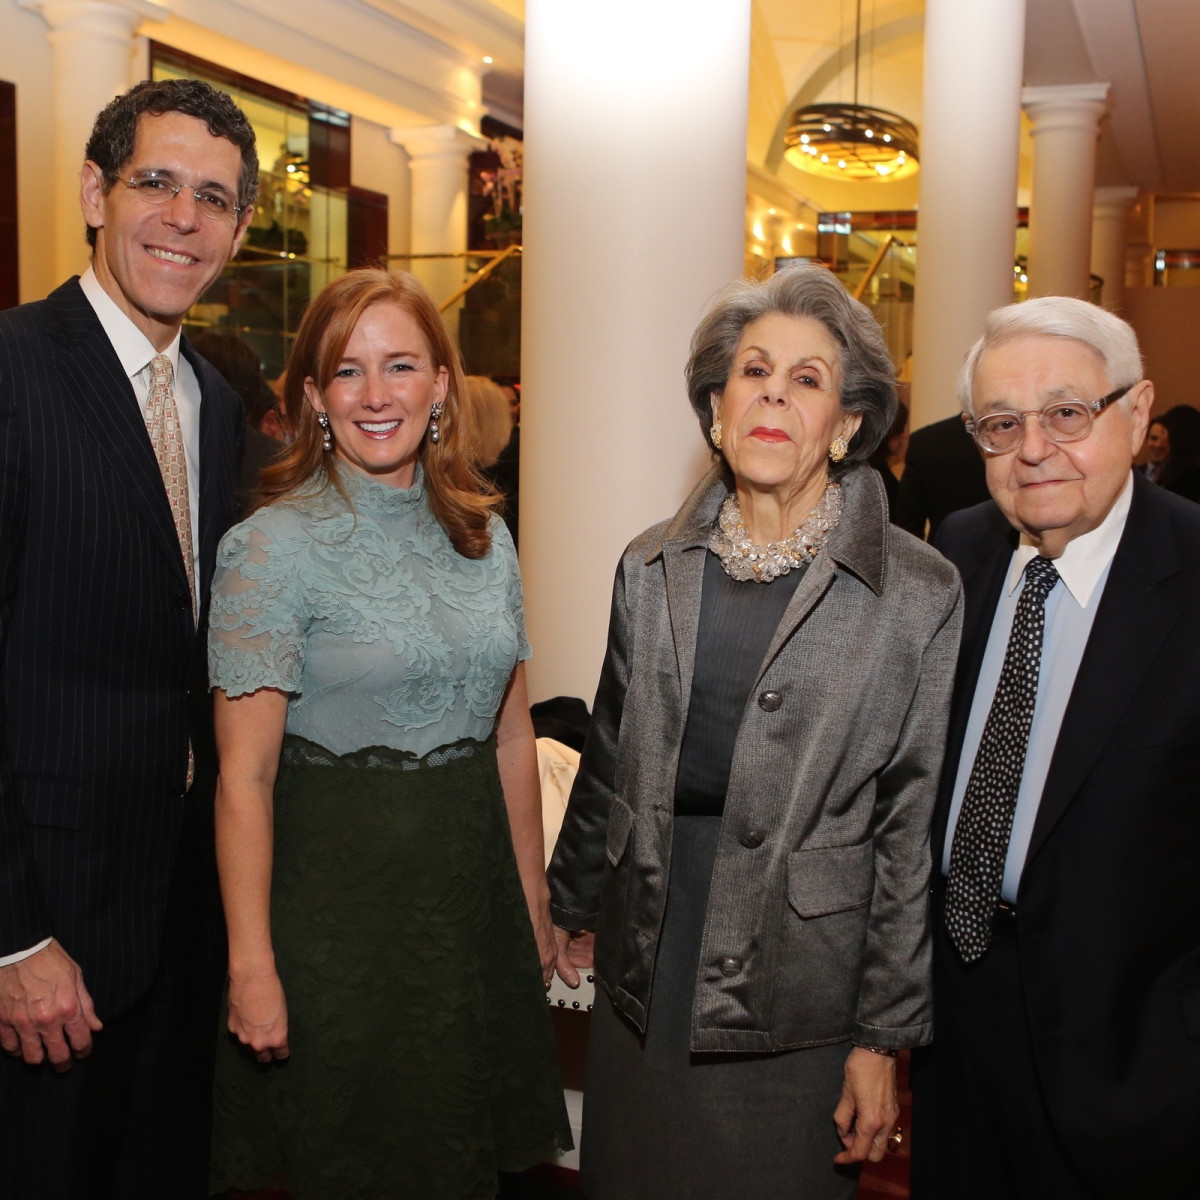 News, Houston Ballet Jubilee of Dance, Dec. 2015, Richard Lapin, Alison Thacker, Susan Lapin, Jack Lapin.